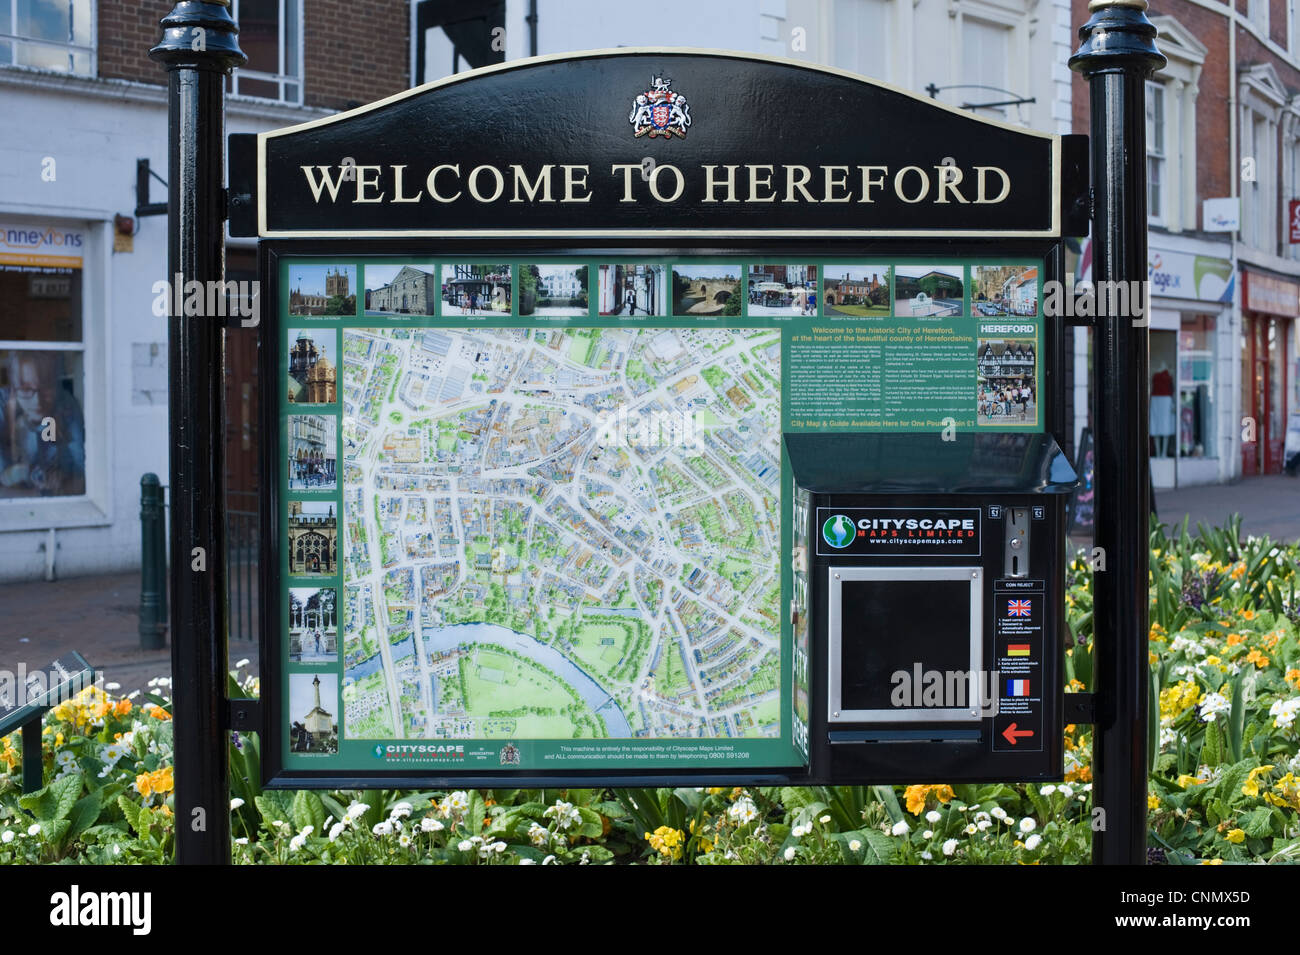 WELCOME TO HEREFORD tourist information point in city centre of